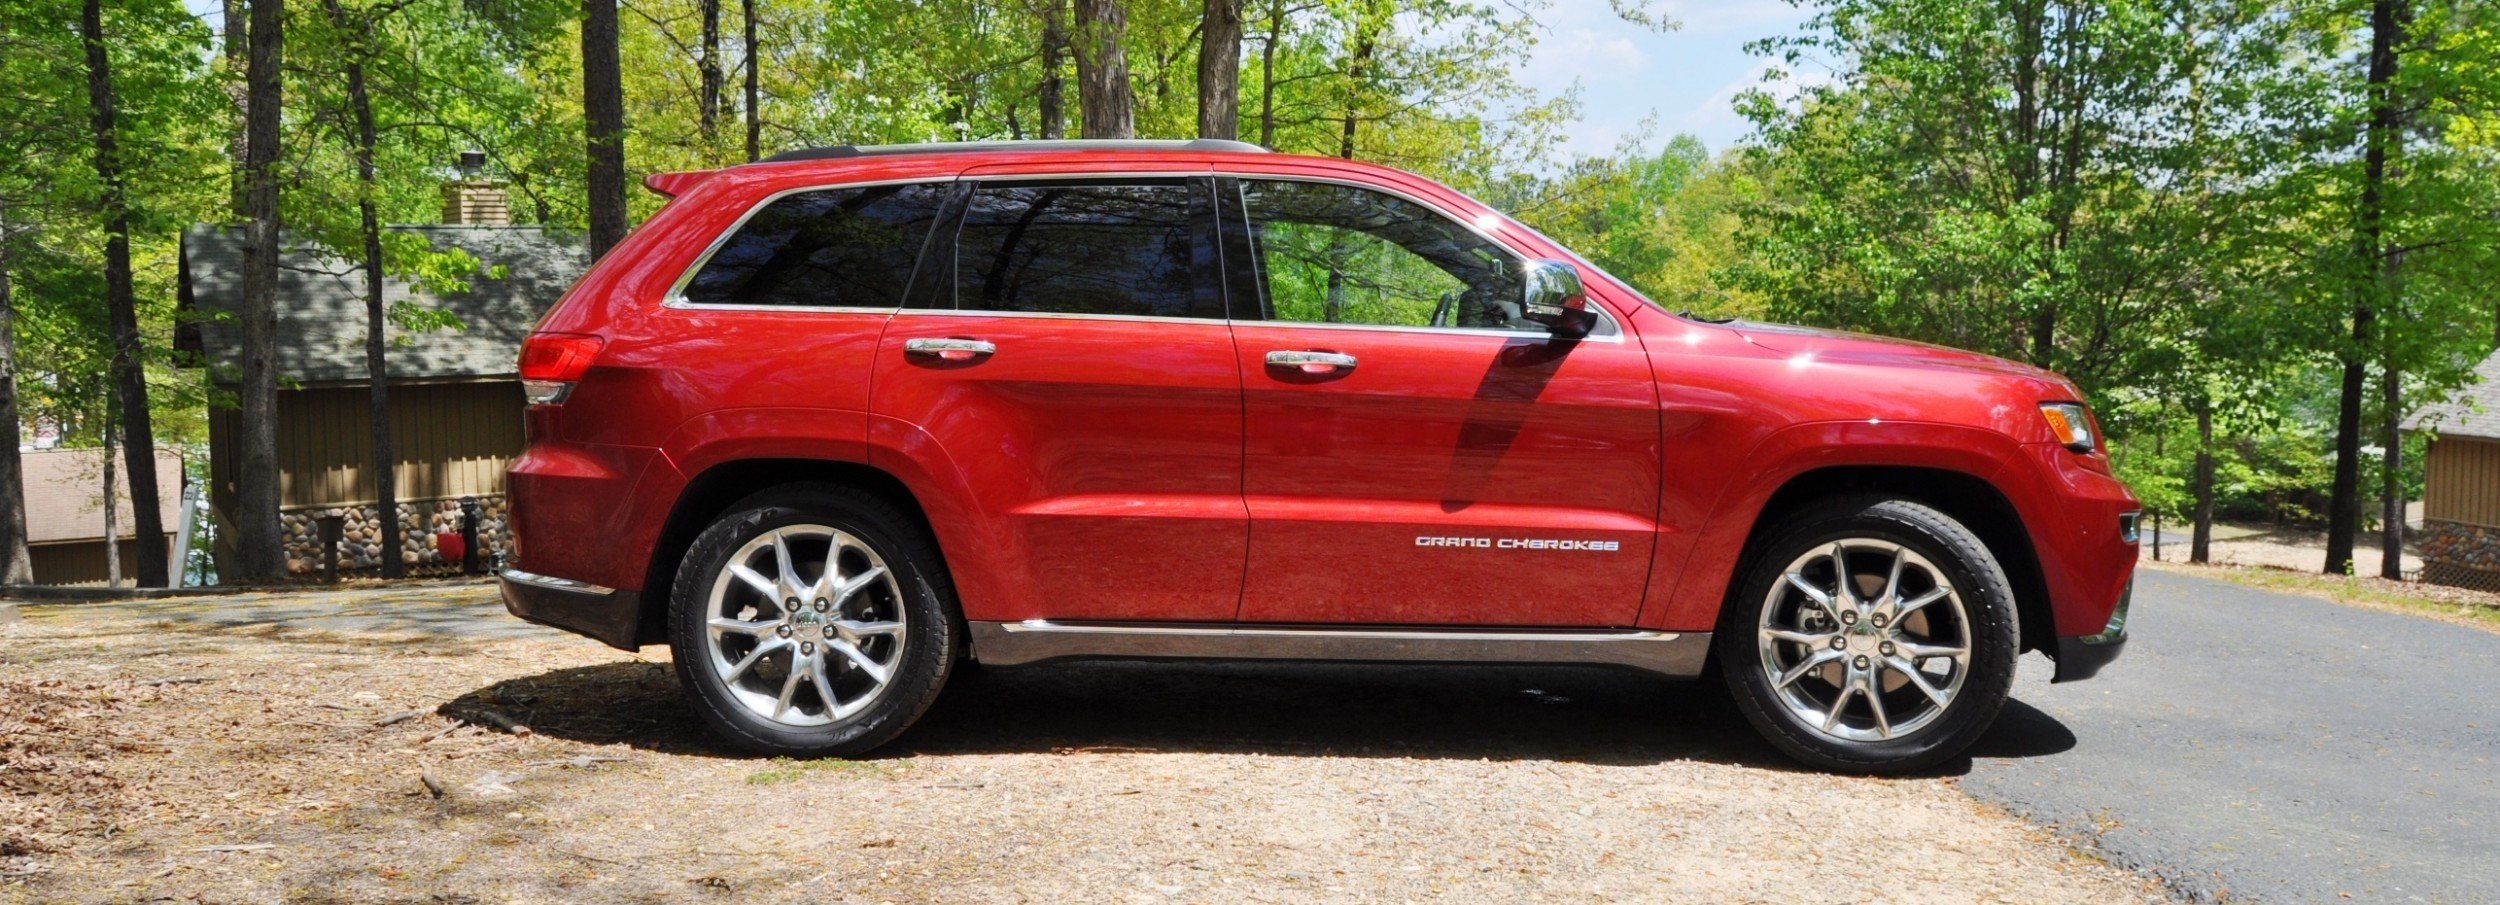 ... Car Revs Daily.com Road Test Review   2014 Jeep Grand Cherokee Summit